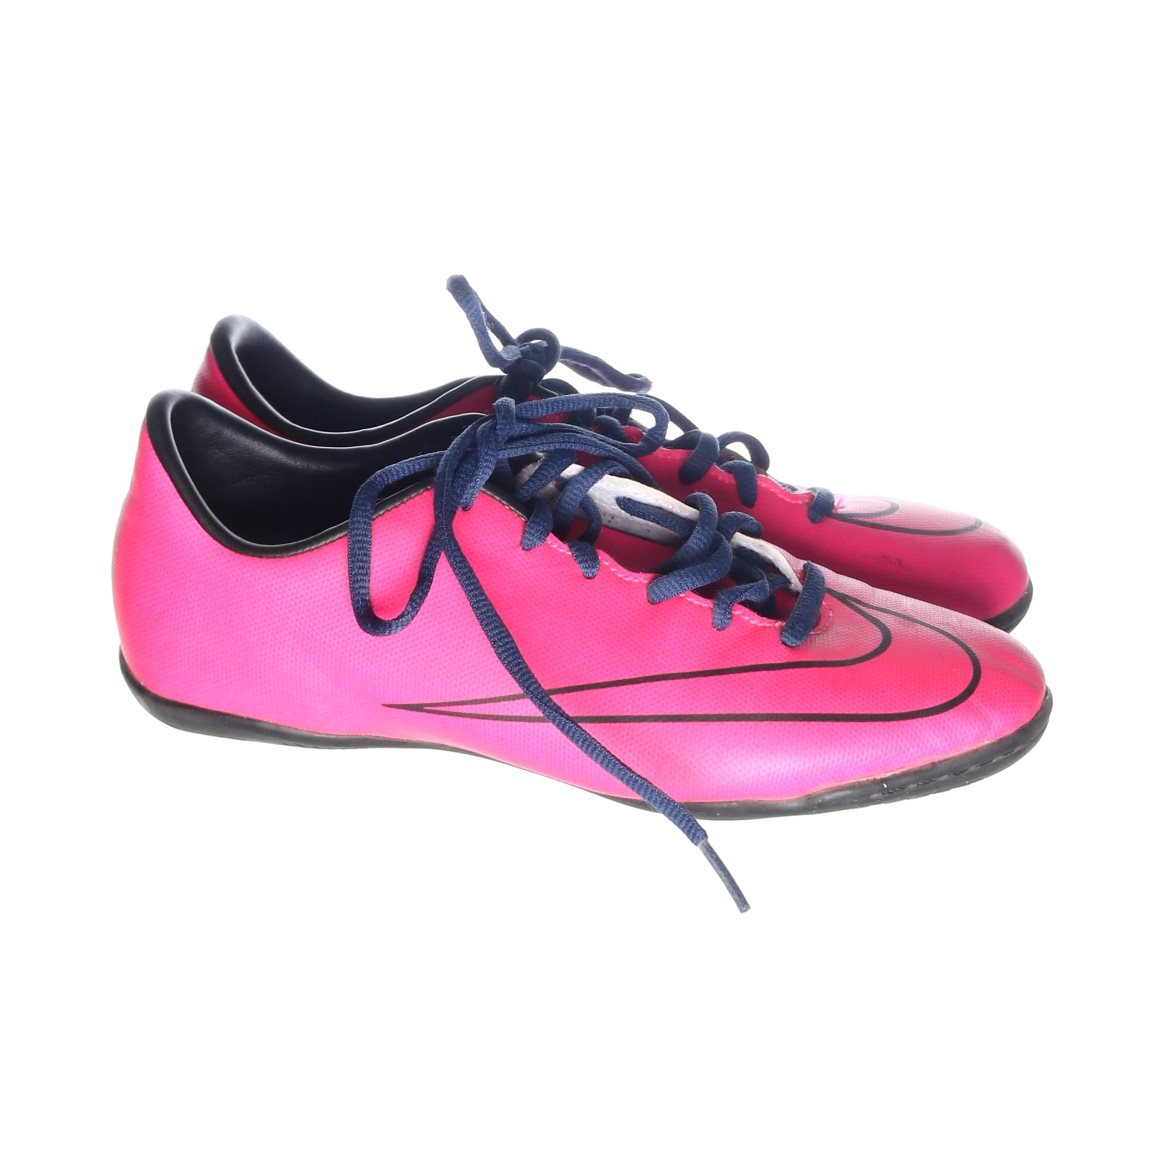 super popular 35404 8df96 ... FG  newest a42cd 4b5f0 Nike, Fotbollsskor, Mercurial, Strl 38, Rosa